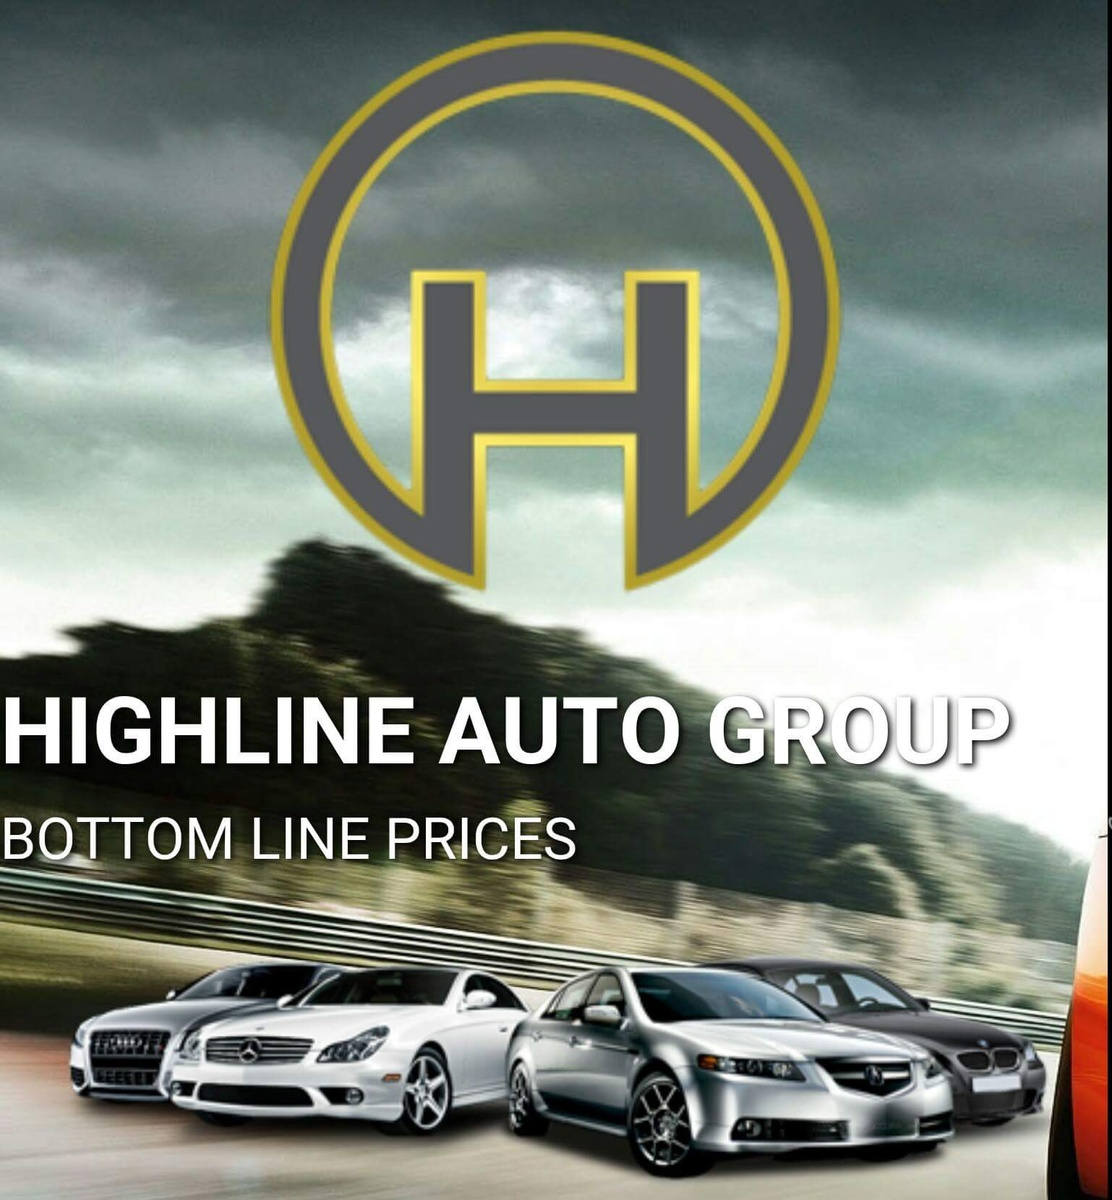 Highline Auto Group Montclair Ca Read Consumer Reviews Browse Used And New Cars For Sale